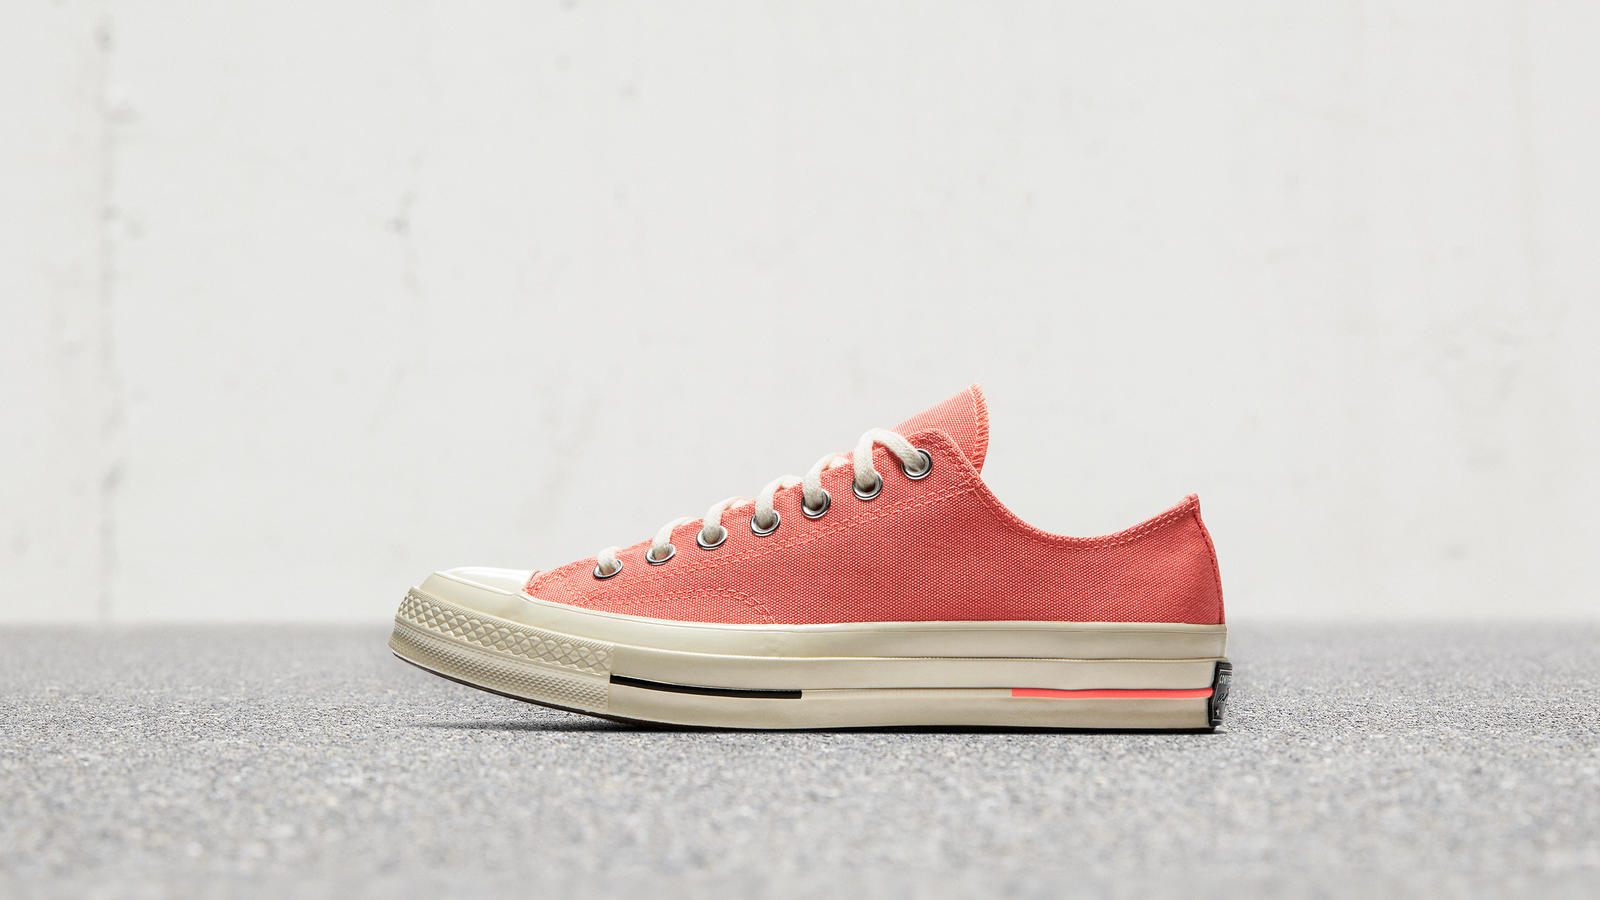 Converse chuck 70 bright canvas 03 hd 1600